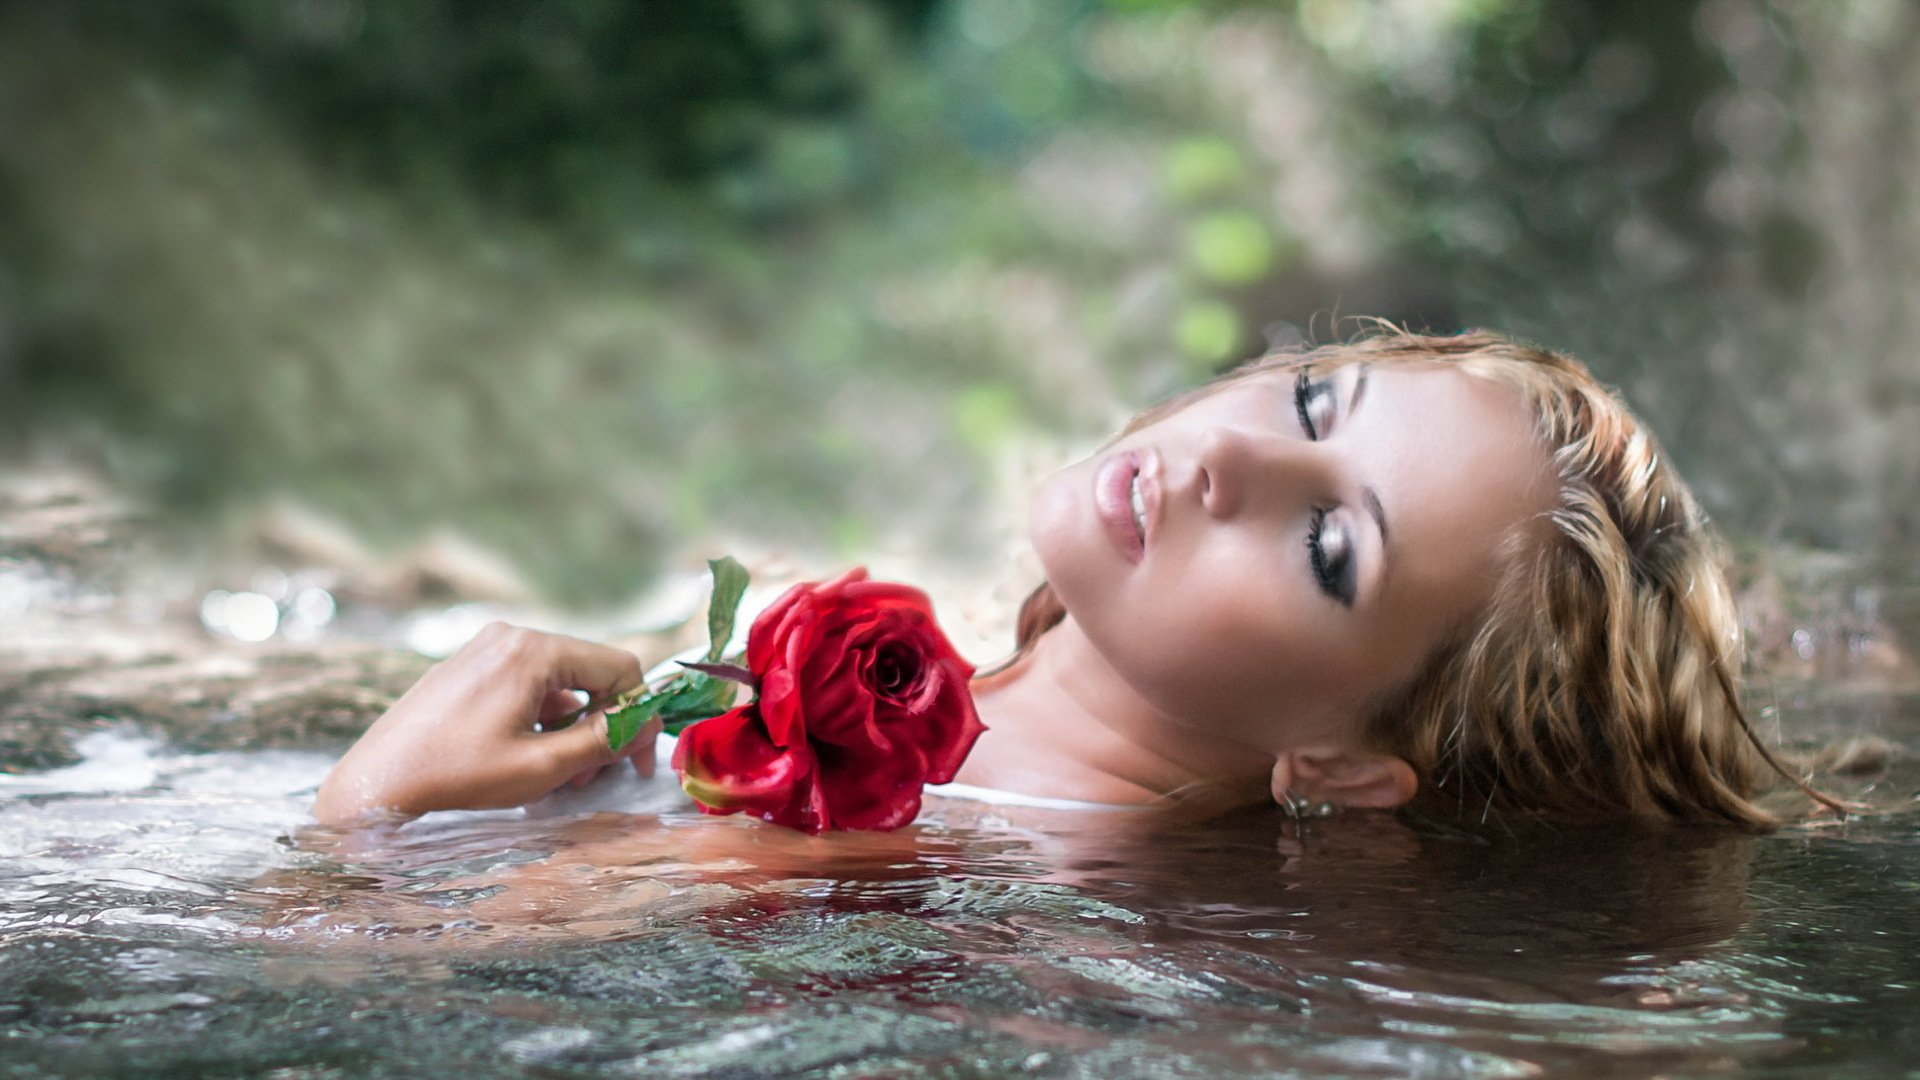 Hd Wallpaper - Hot Girl With Red Rose , HD Wallpaper & Backgrounds